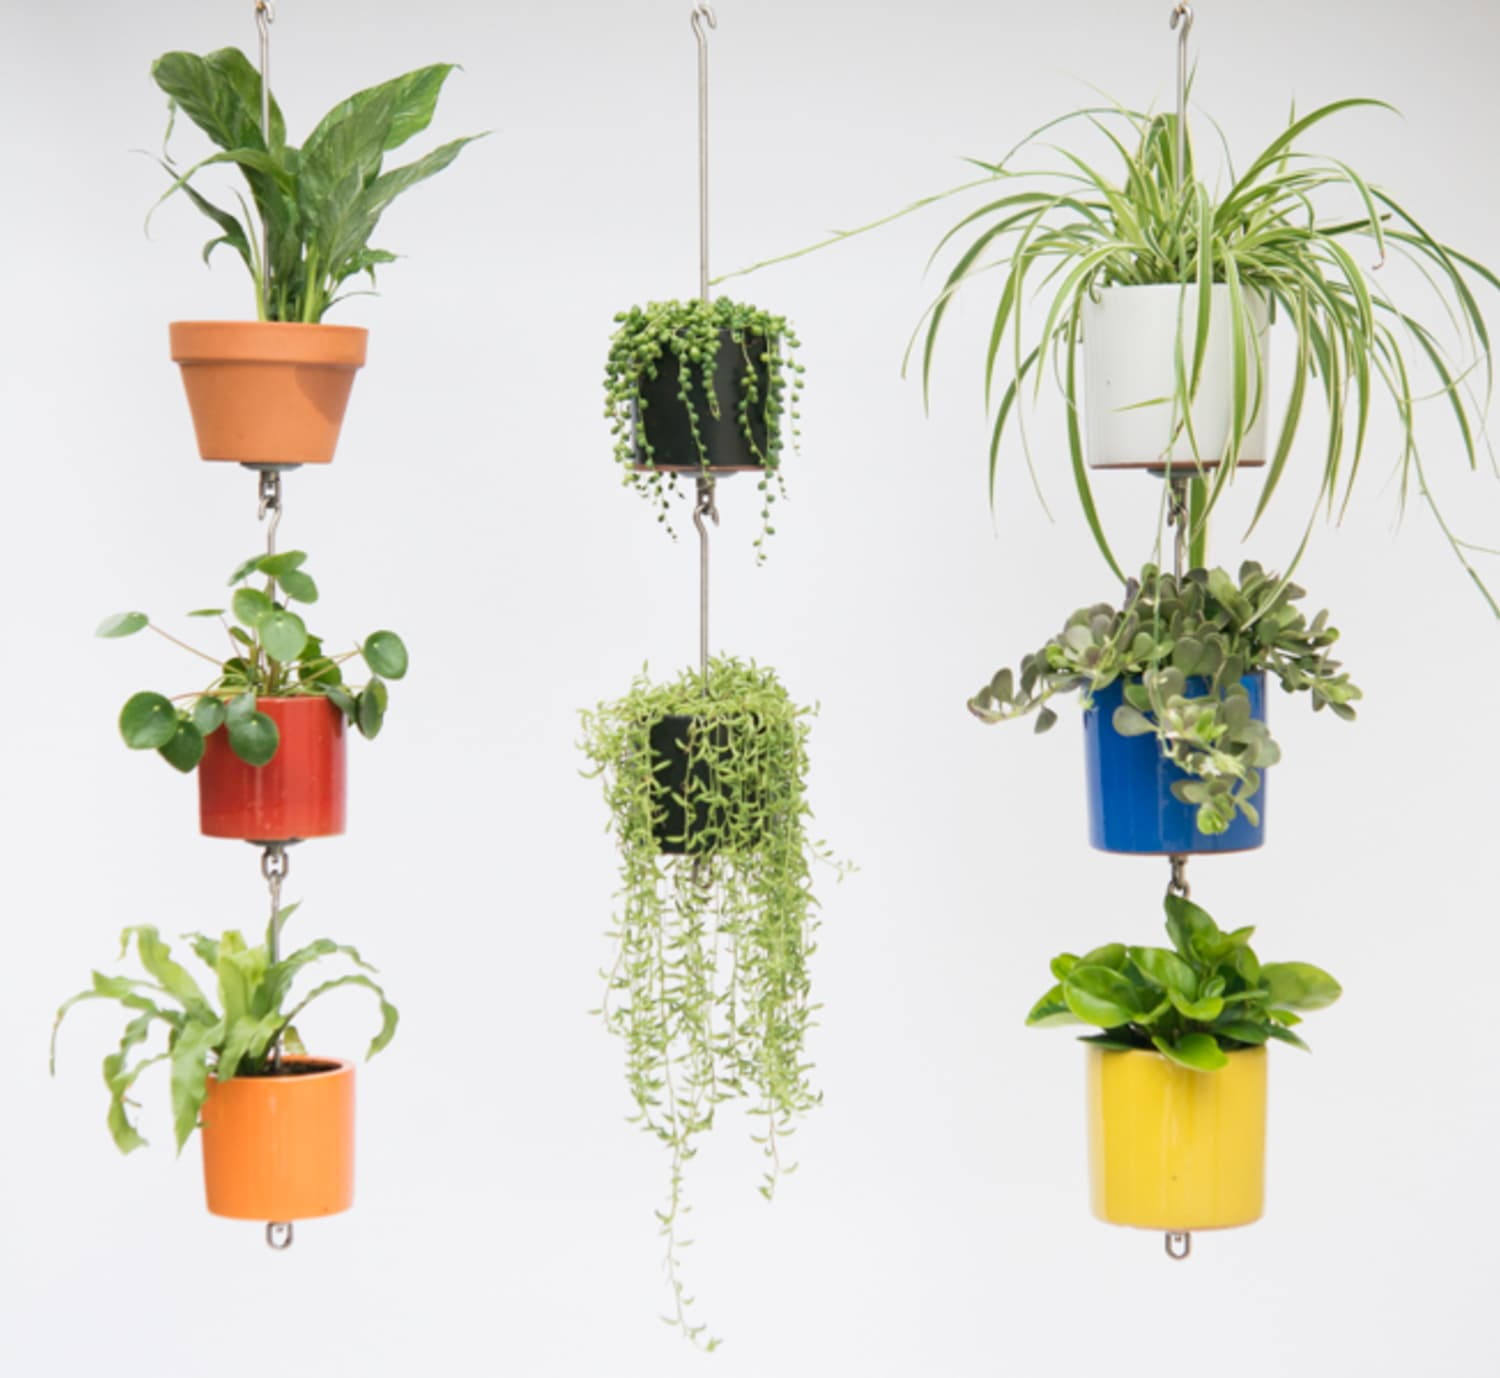 This Kit Helps Turn Your Houseplants into a Gorgeous Vertical Garden